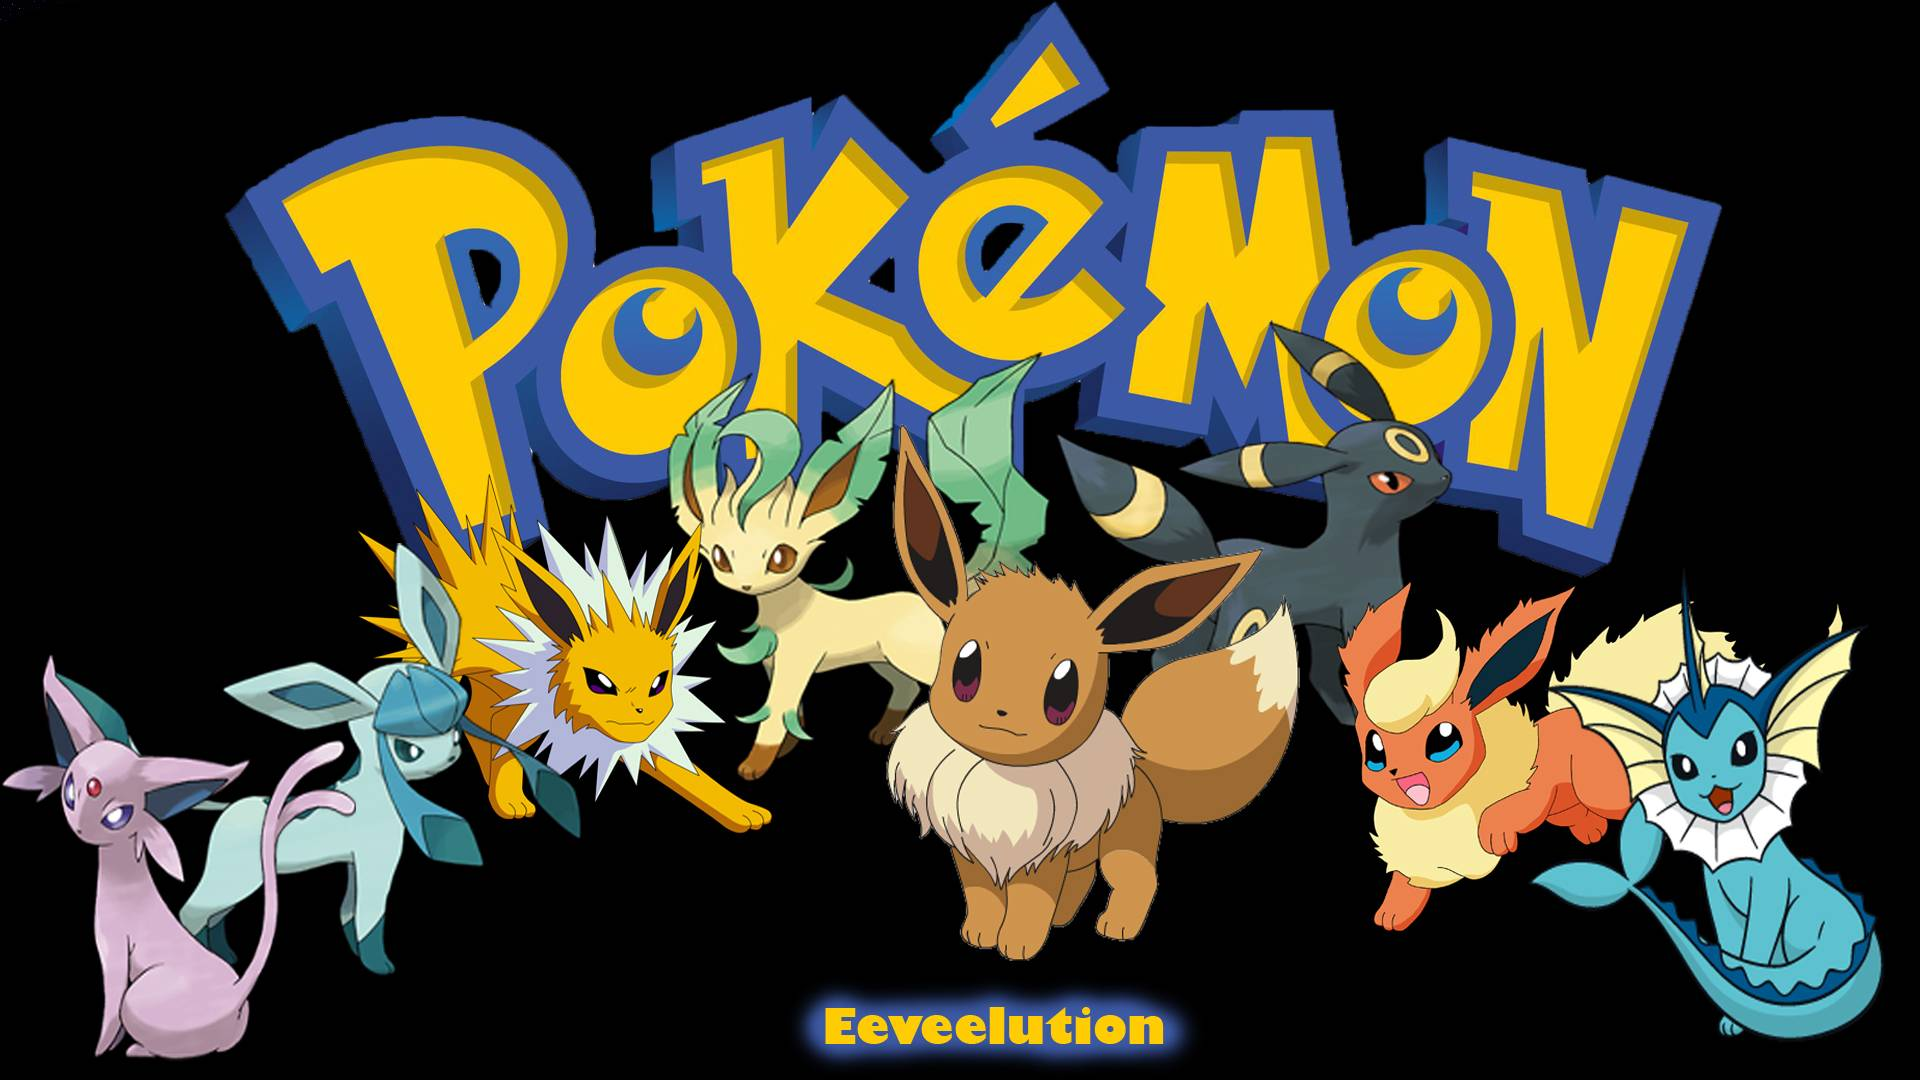 Best-images-about-Eevee-on-Pinterest-Valentine-day-cards-1920%C3%971080-Eevee-evolutions-wallpaper-wpc5802783